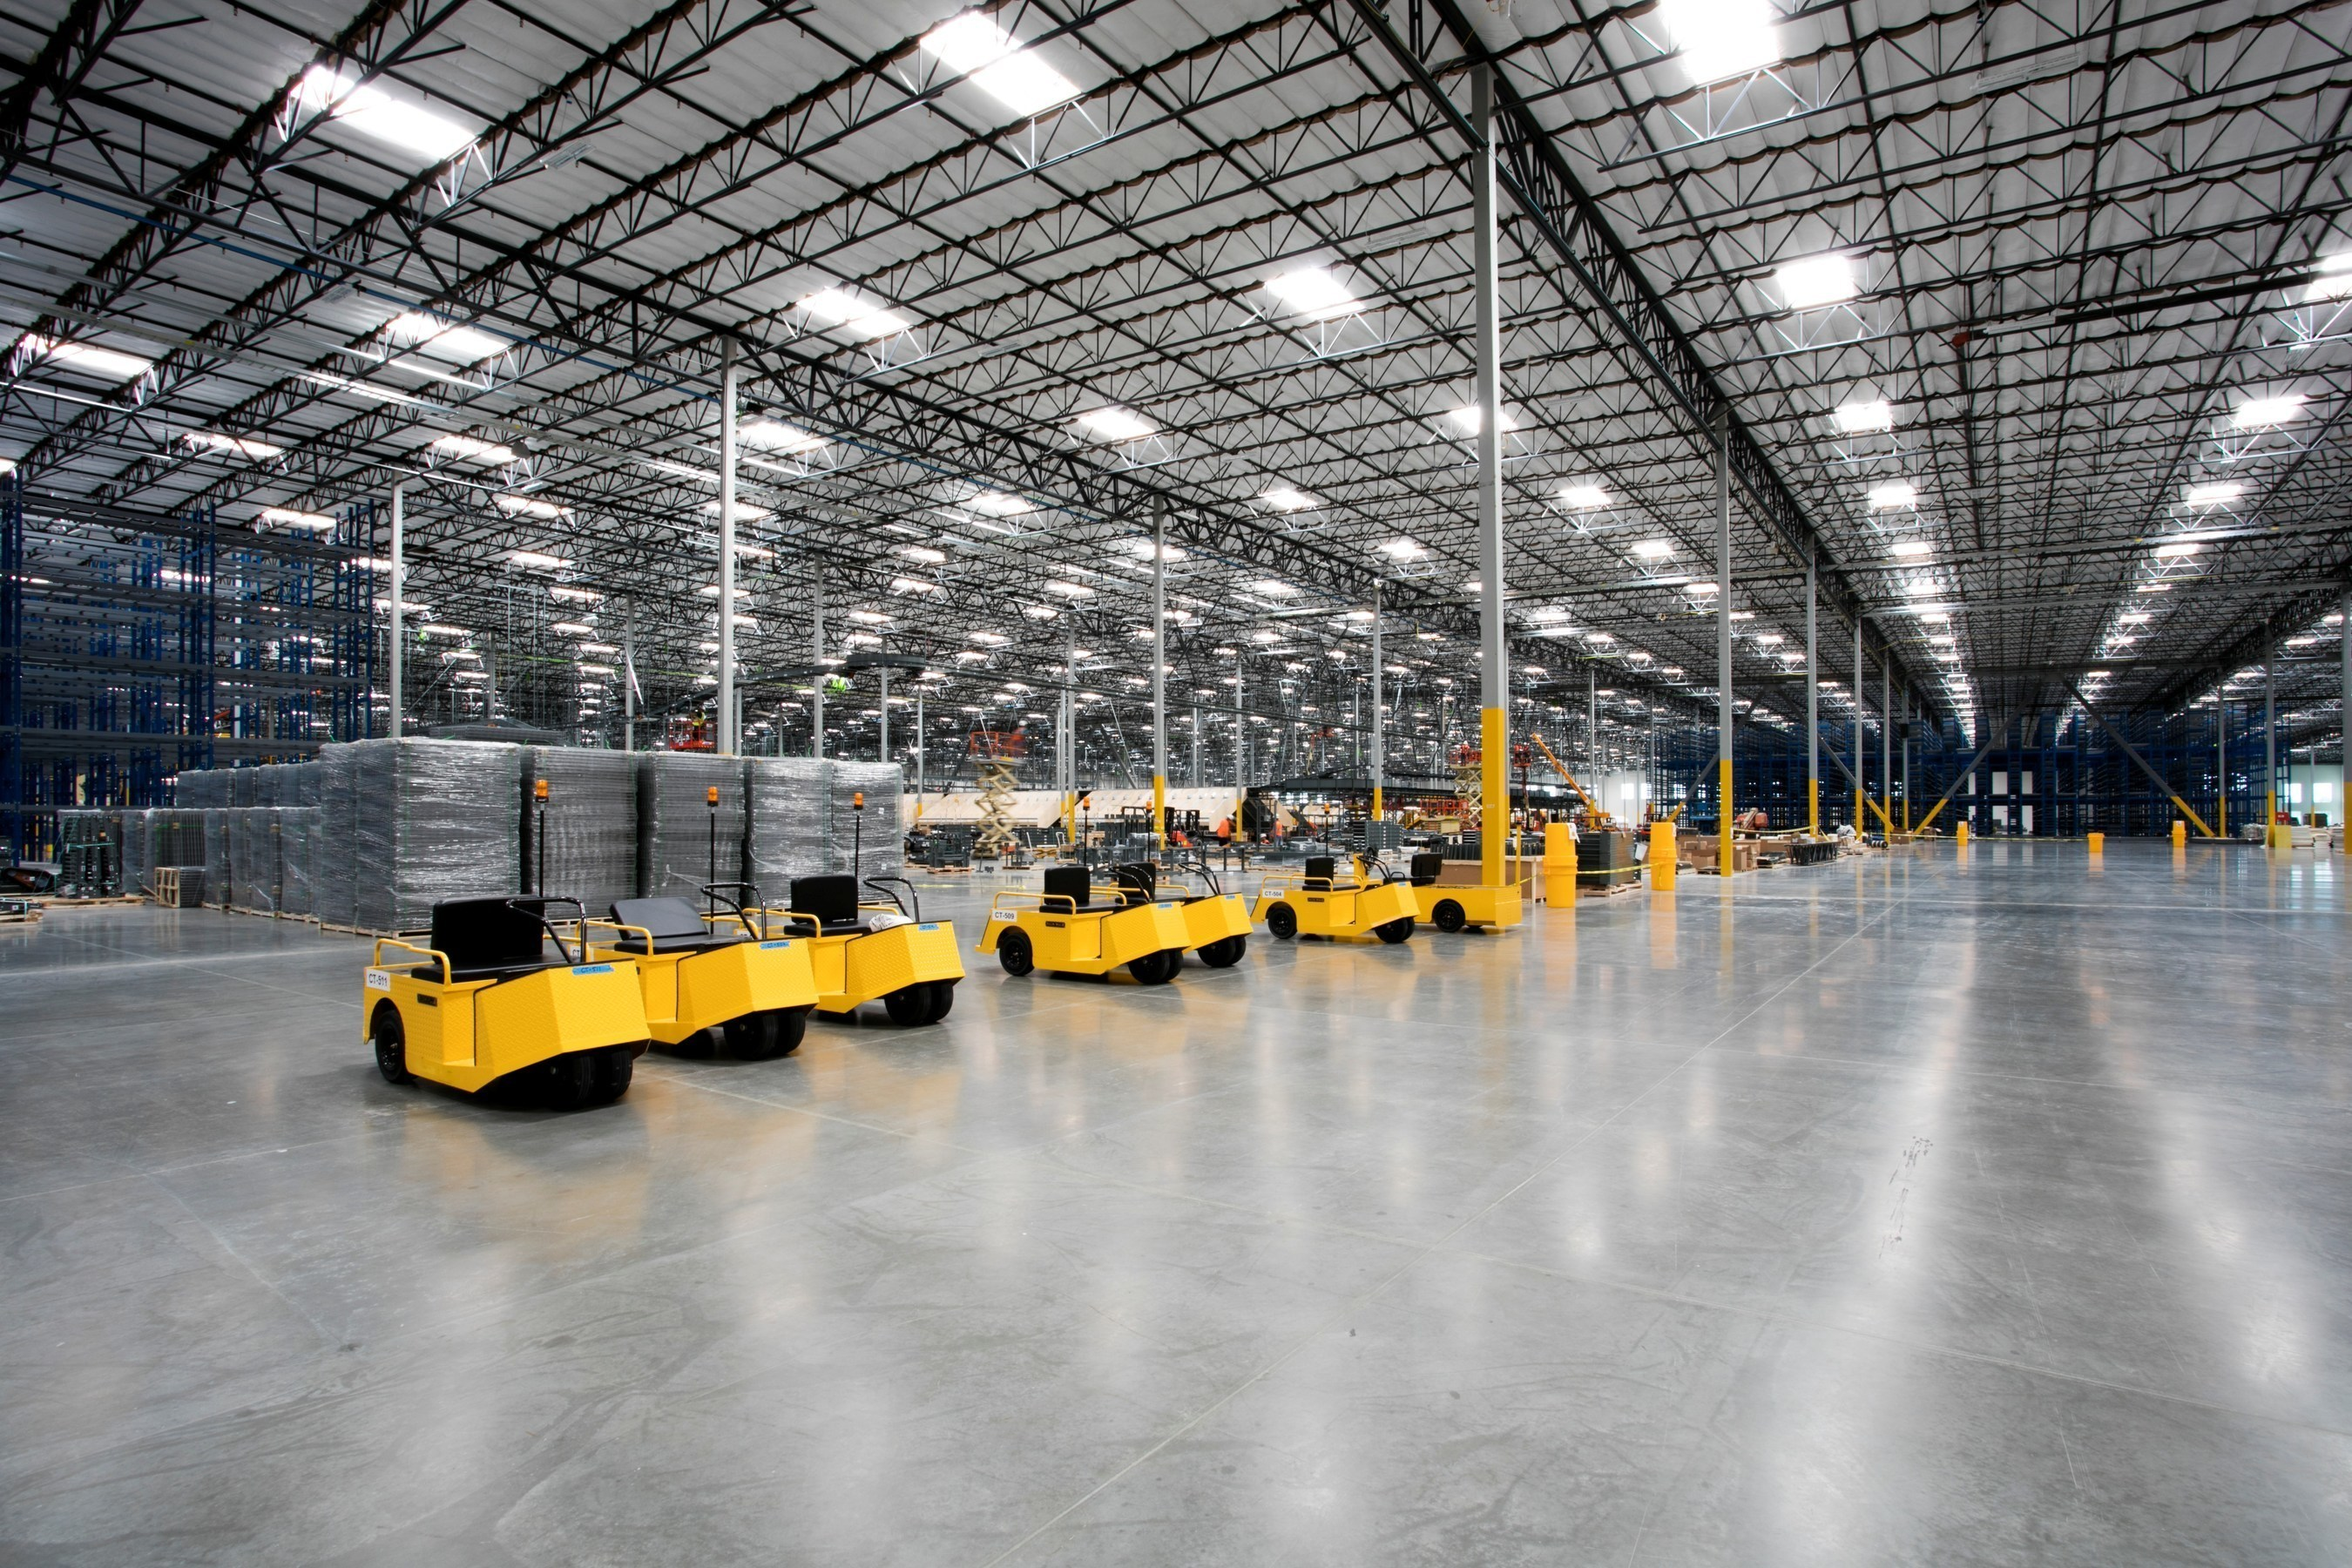 The 1 million square foot facility is expected to accommodate approximately 20 percent of QVC's total U.S. shipments, with plans to store and ship all product categories - from fashion and beauty products to big ticket items like TVs, computers and housewares. (Photo credit: Cari Guerin)